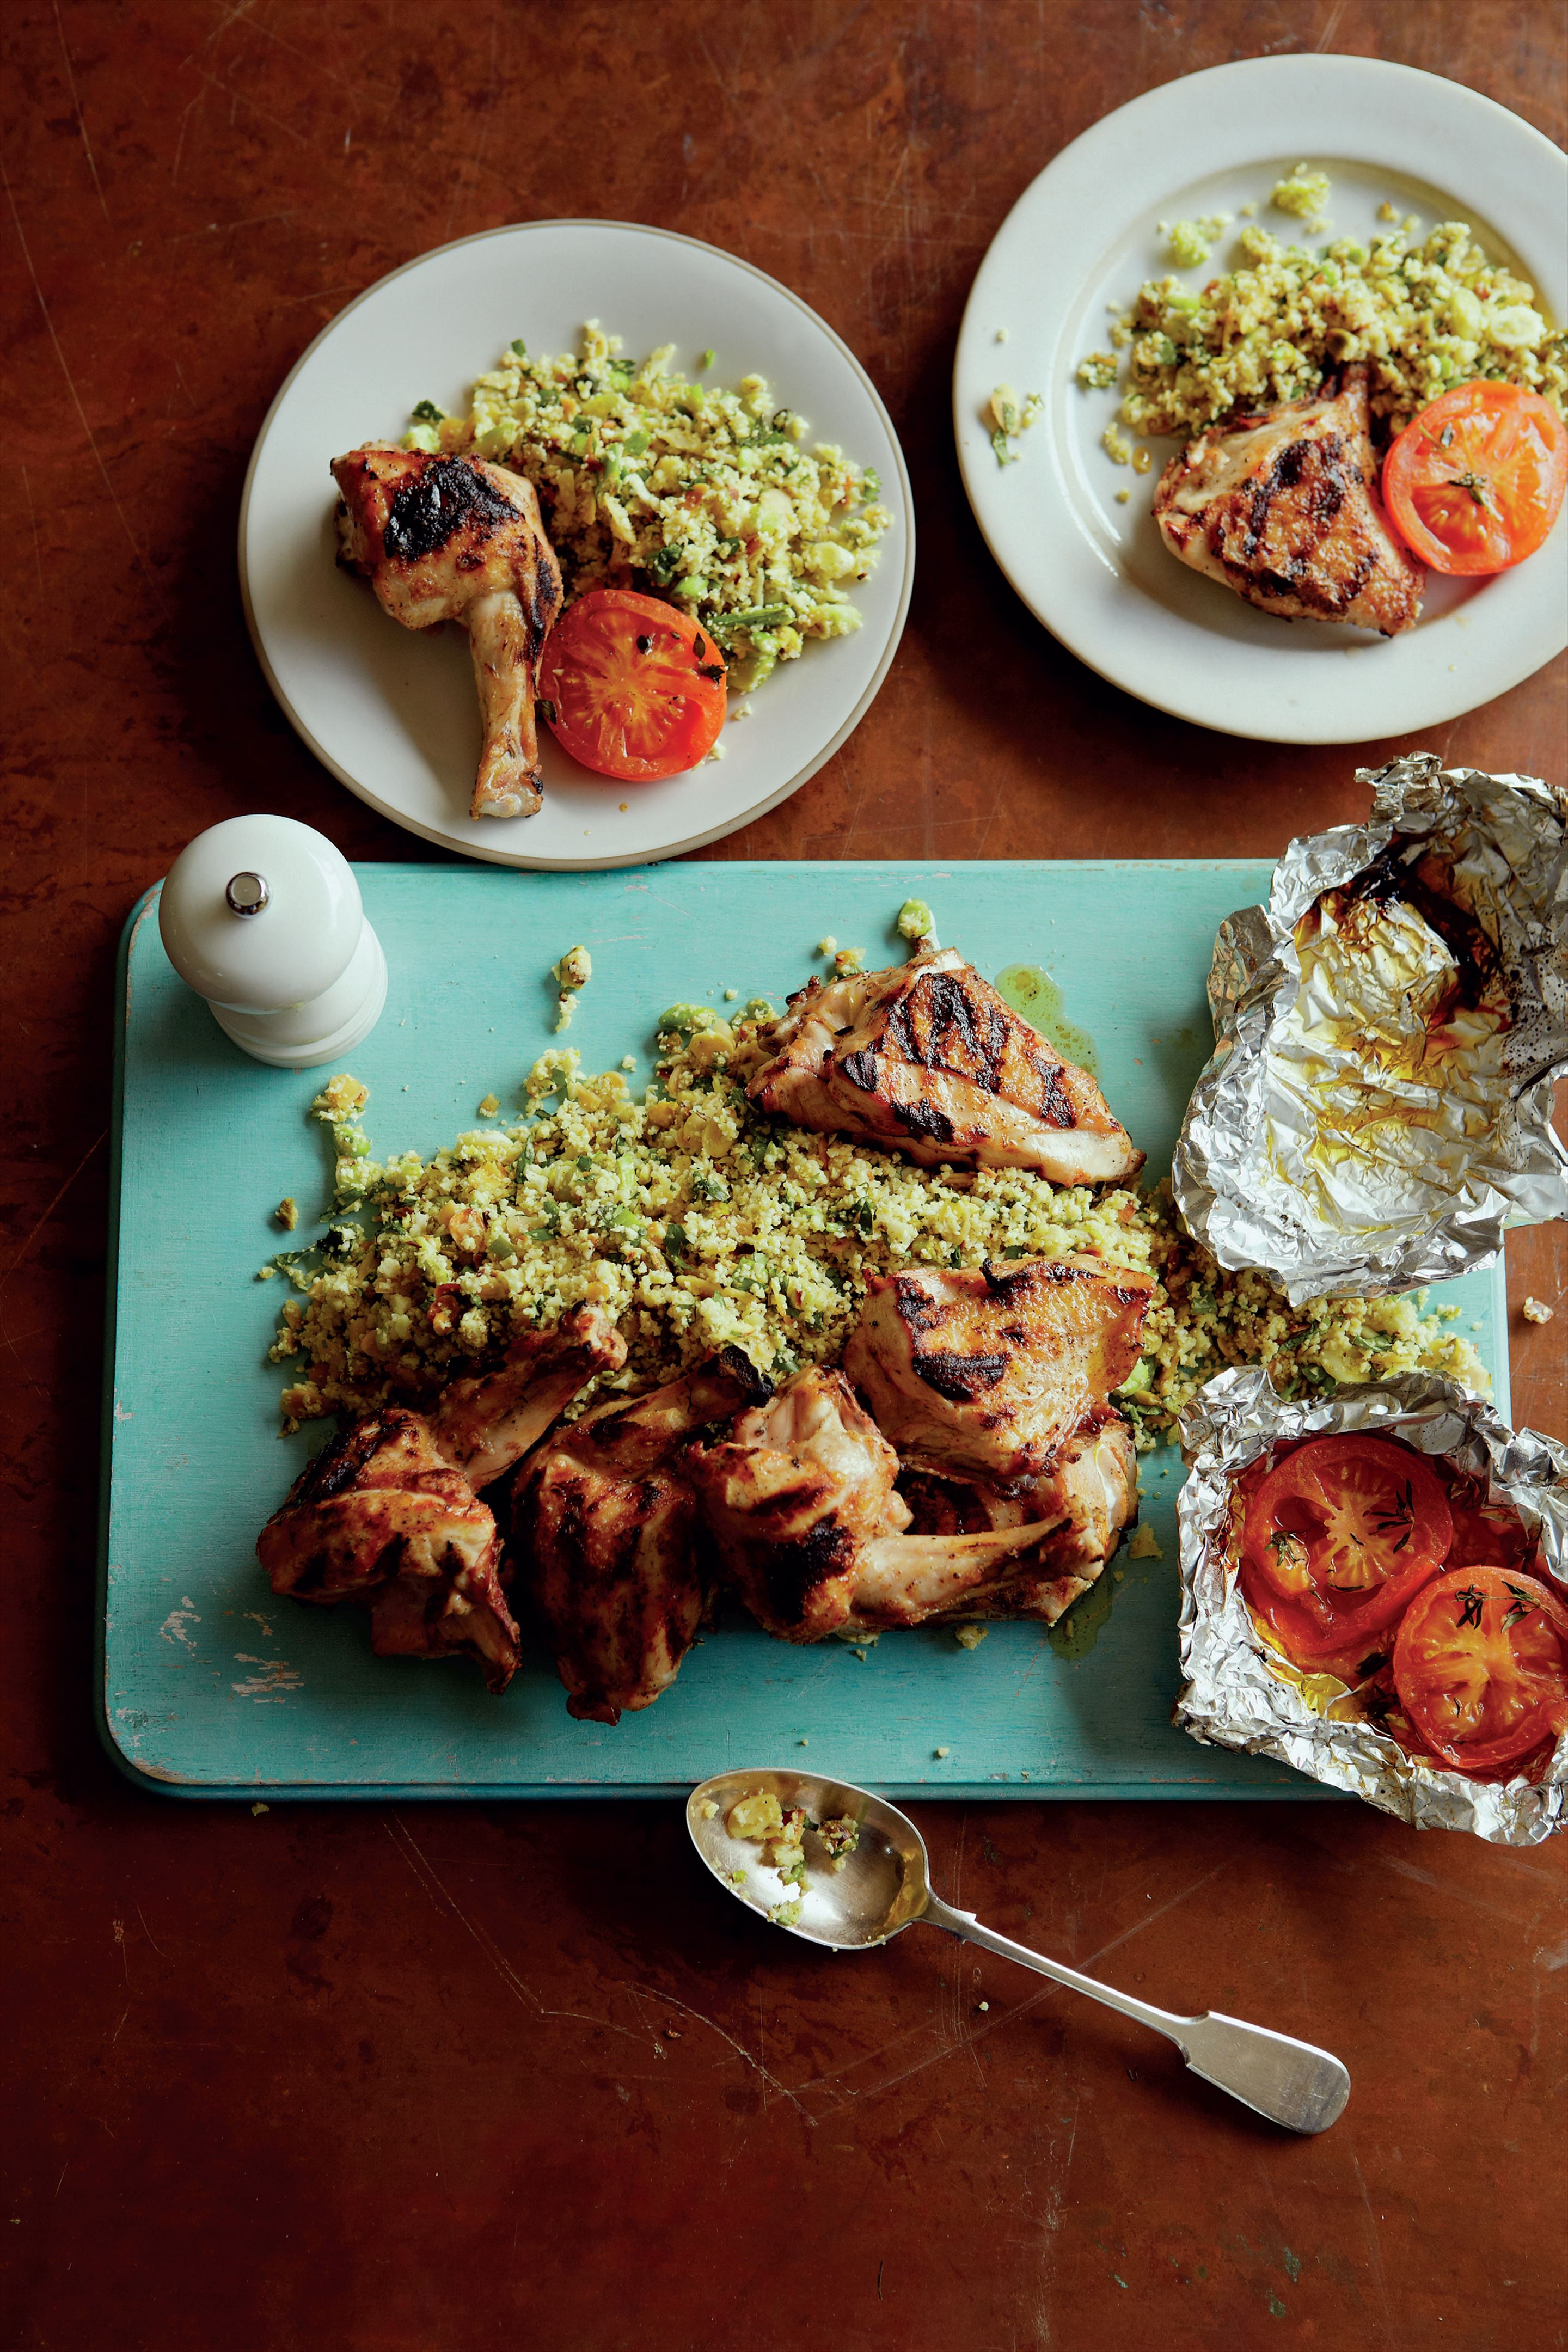 Cauliflower 'couscous' with barbecued chicken and honeyed tomatoes